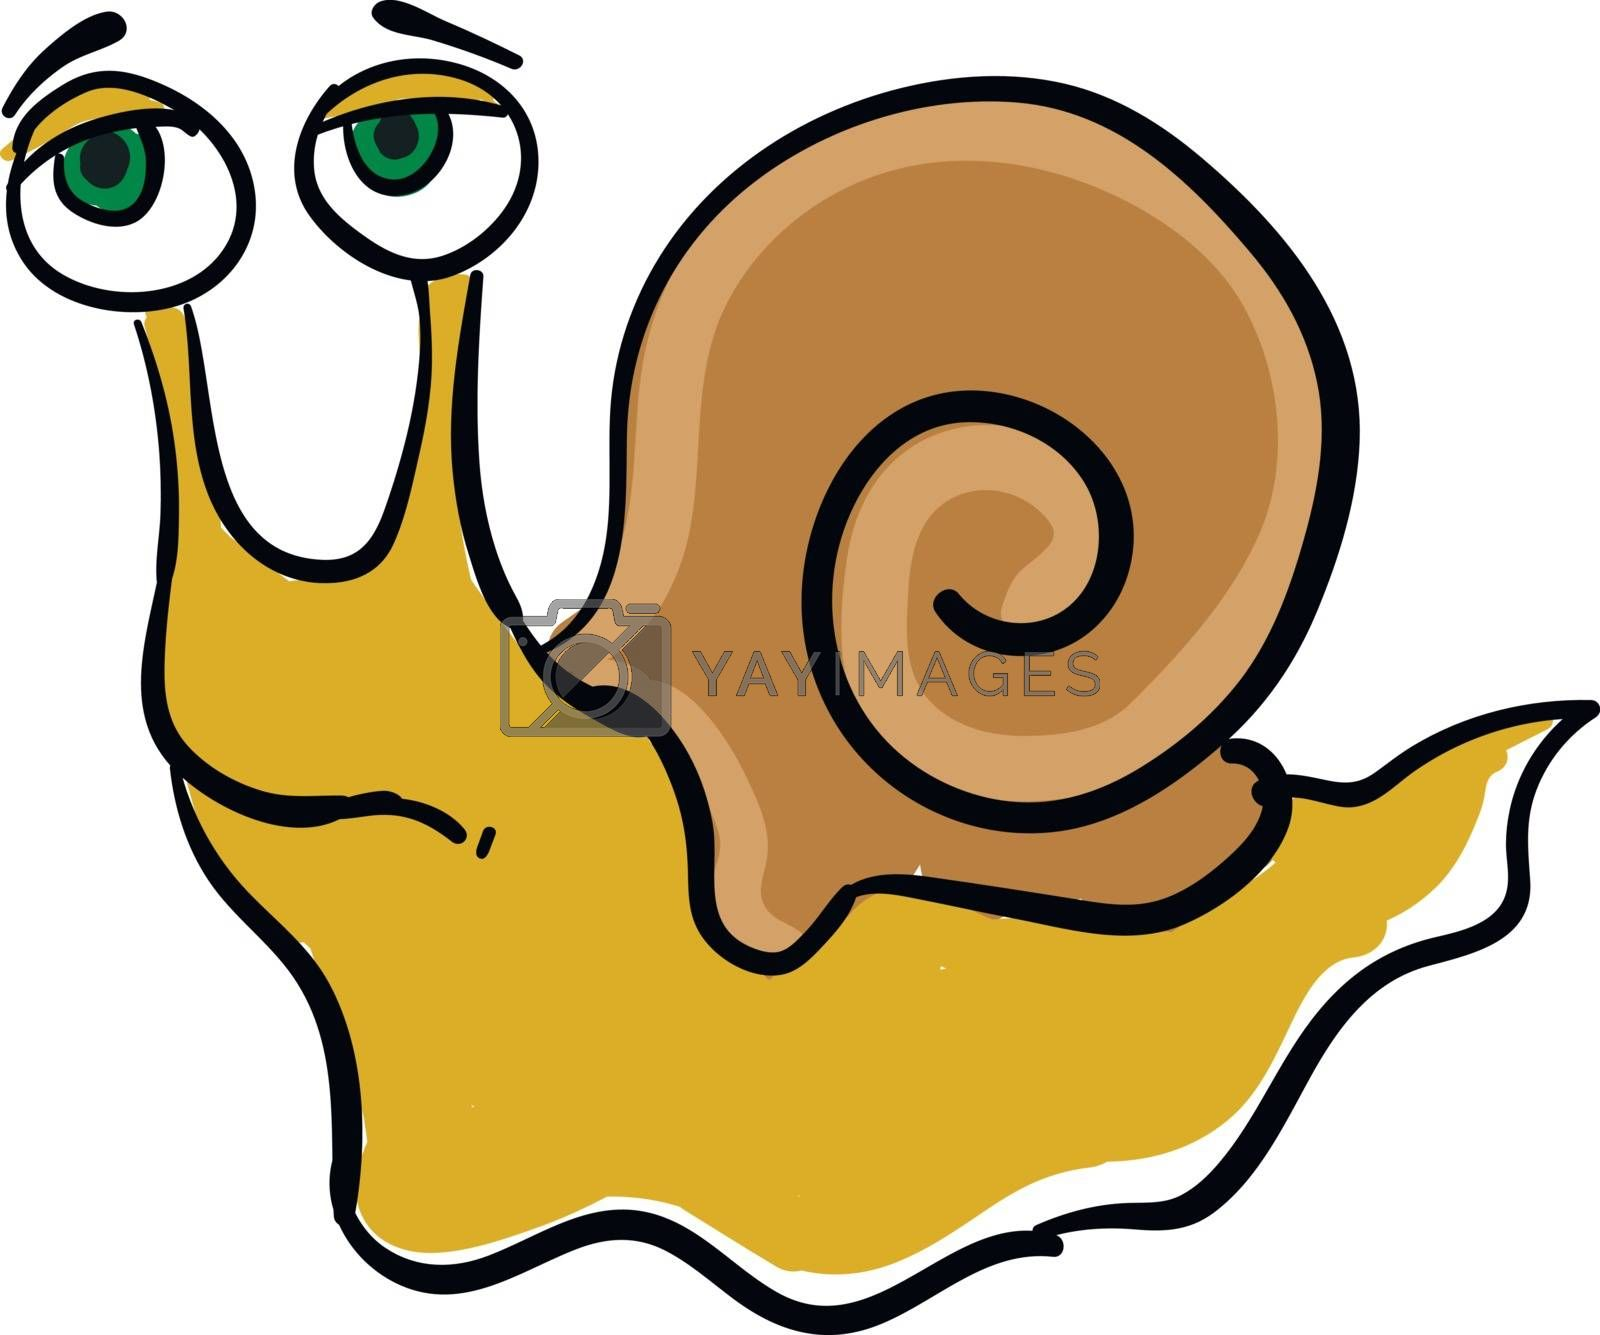 Royalty free image of Emoji of a sad yellow-colored snail vector or color illustration by Morphart